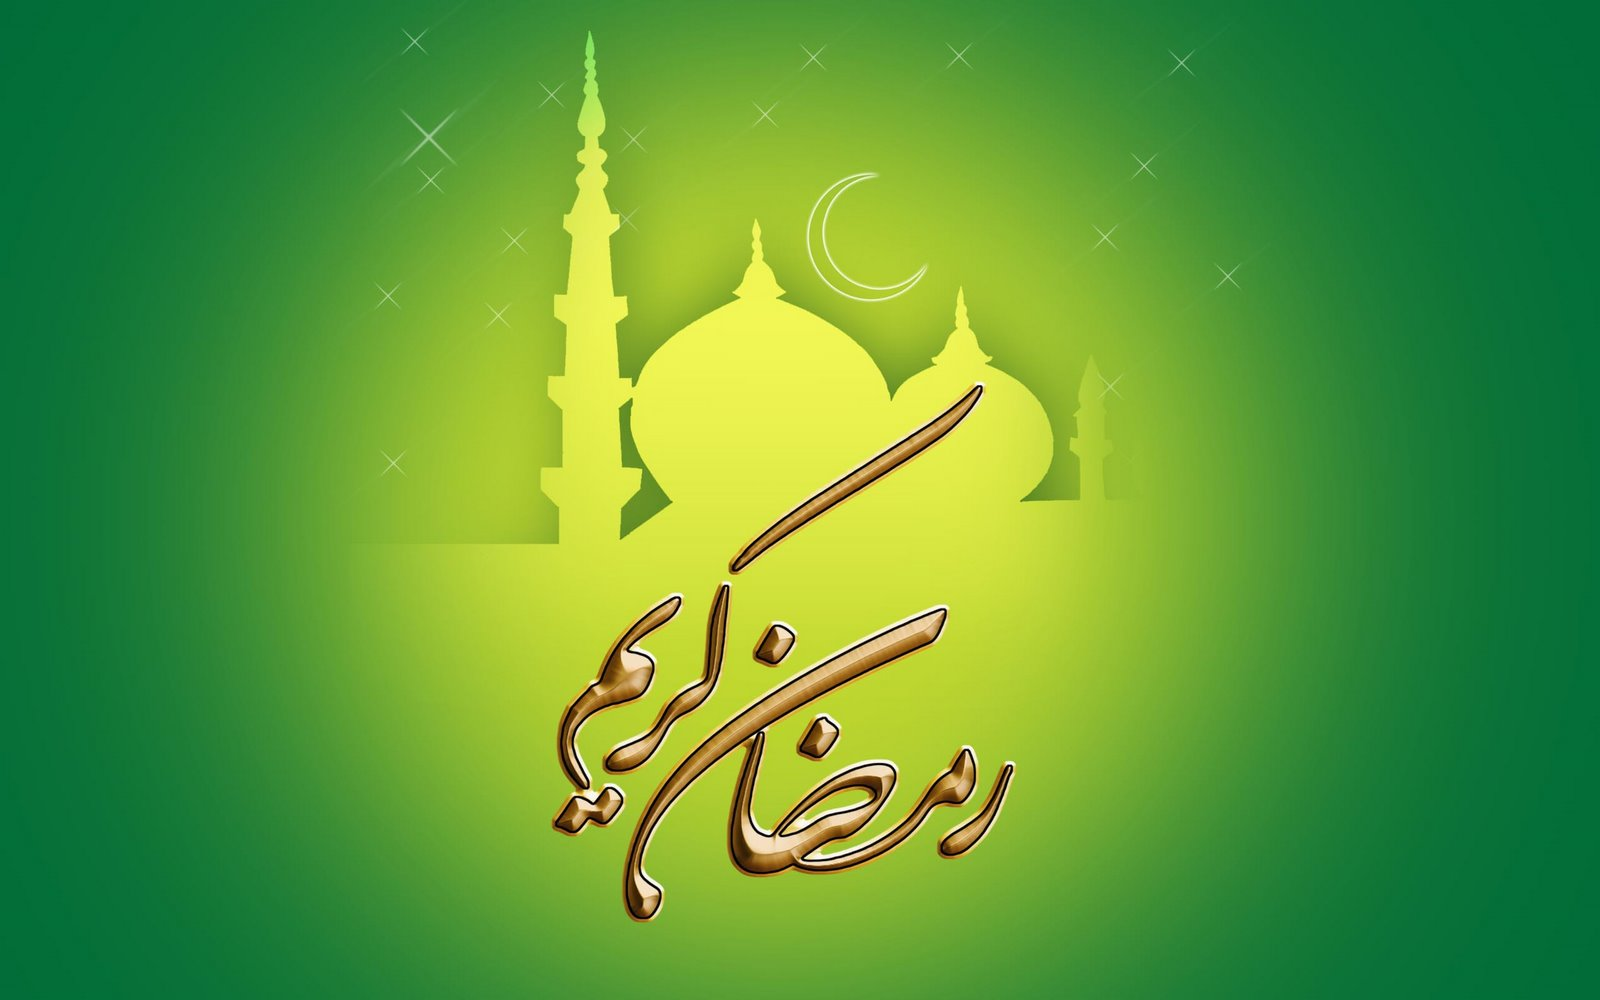 http://thepatria.files.wordpress.com/2010/08/ramzan-kareem-wallpapers-4.jpg